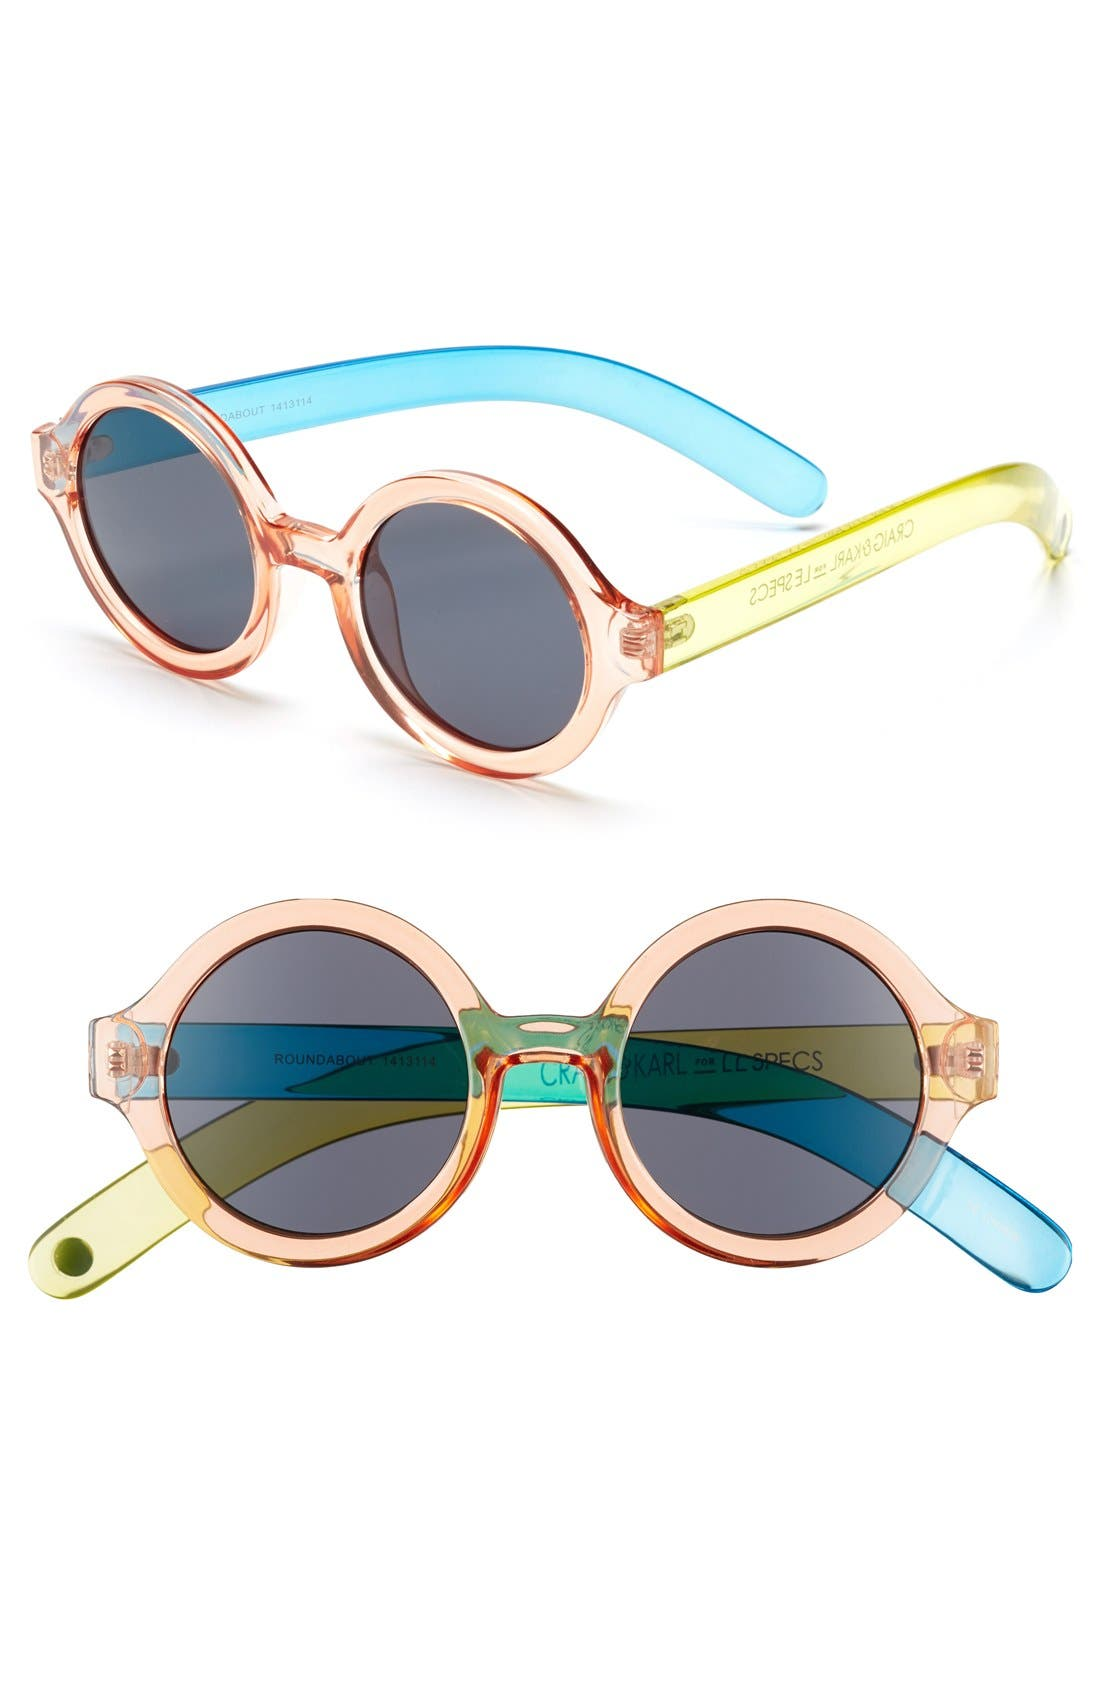 Alternate Image 1 Selected - Craig and Karl x Le Specs 'Roundabout' 45mm Sunglasses